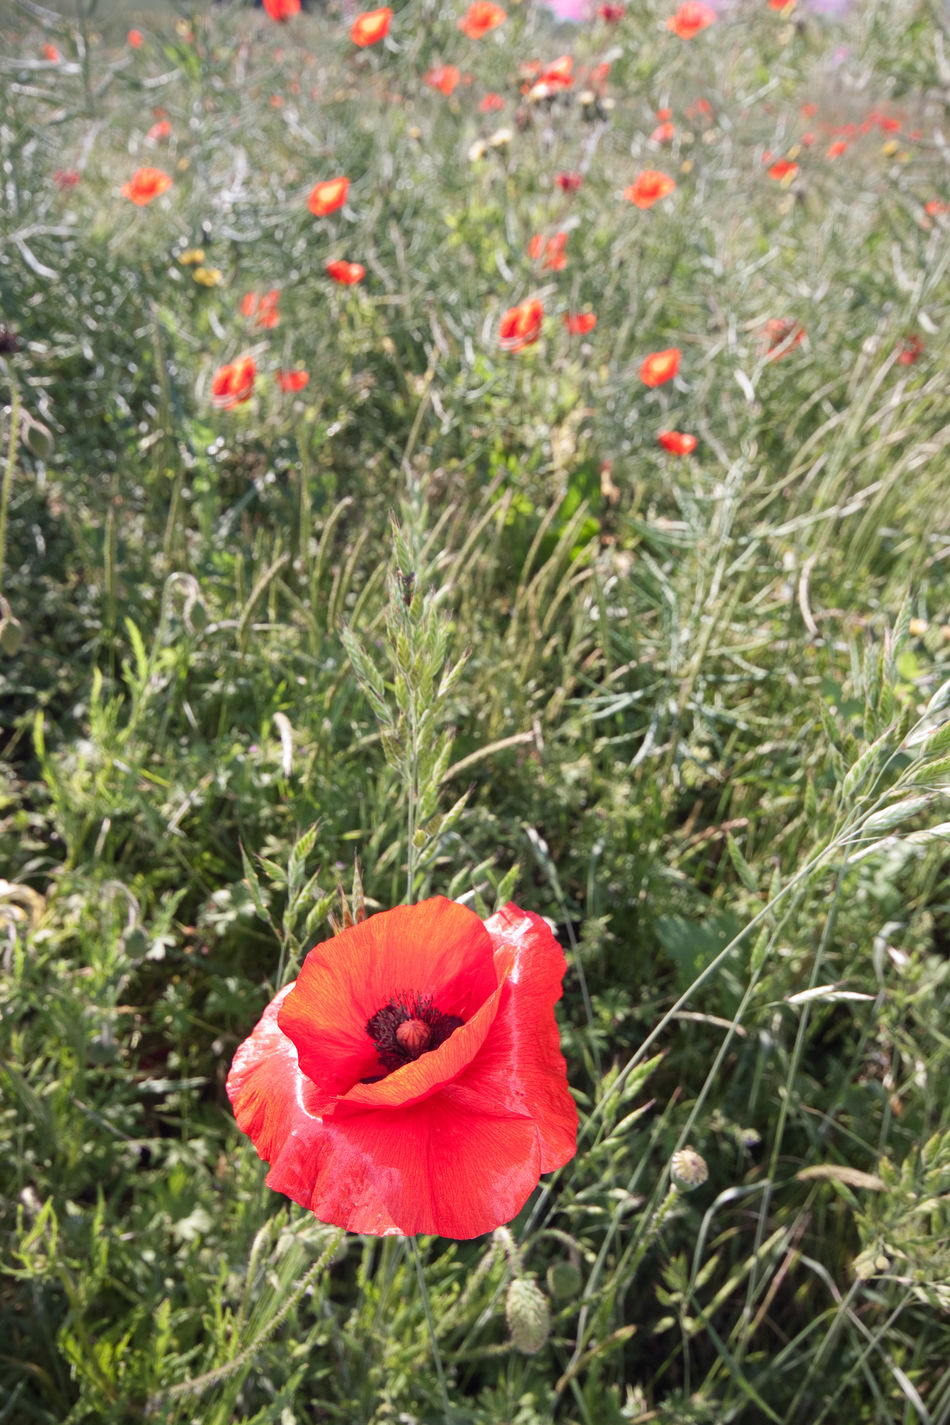 Poppy flower in field Beauty In Nature Blooming Close-up Day EyeEmNewHere Field Flower Flower Head Fragility Freshness Grass Growth Hibiscus Nature No People Outdoors Petal Plant Poppy Red